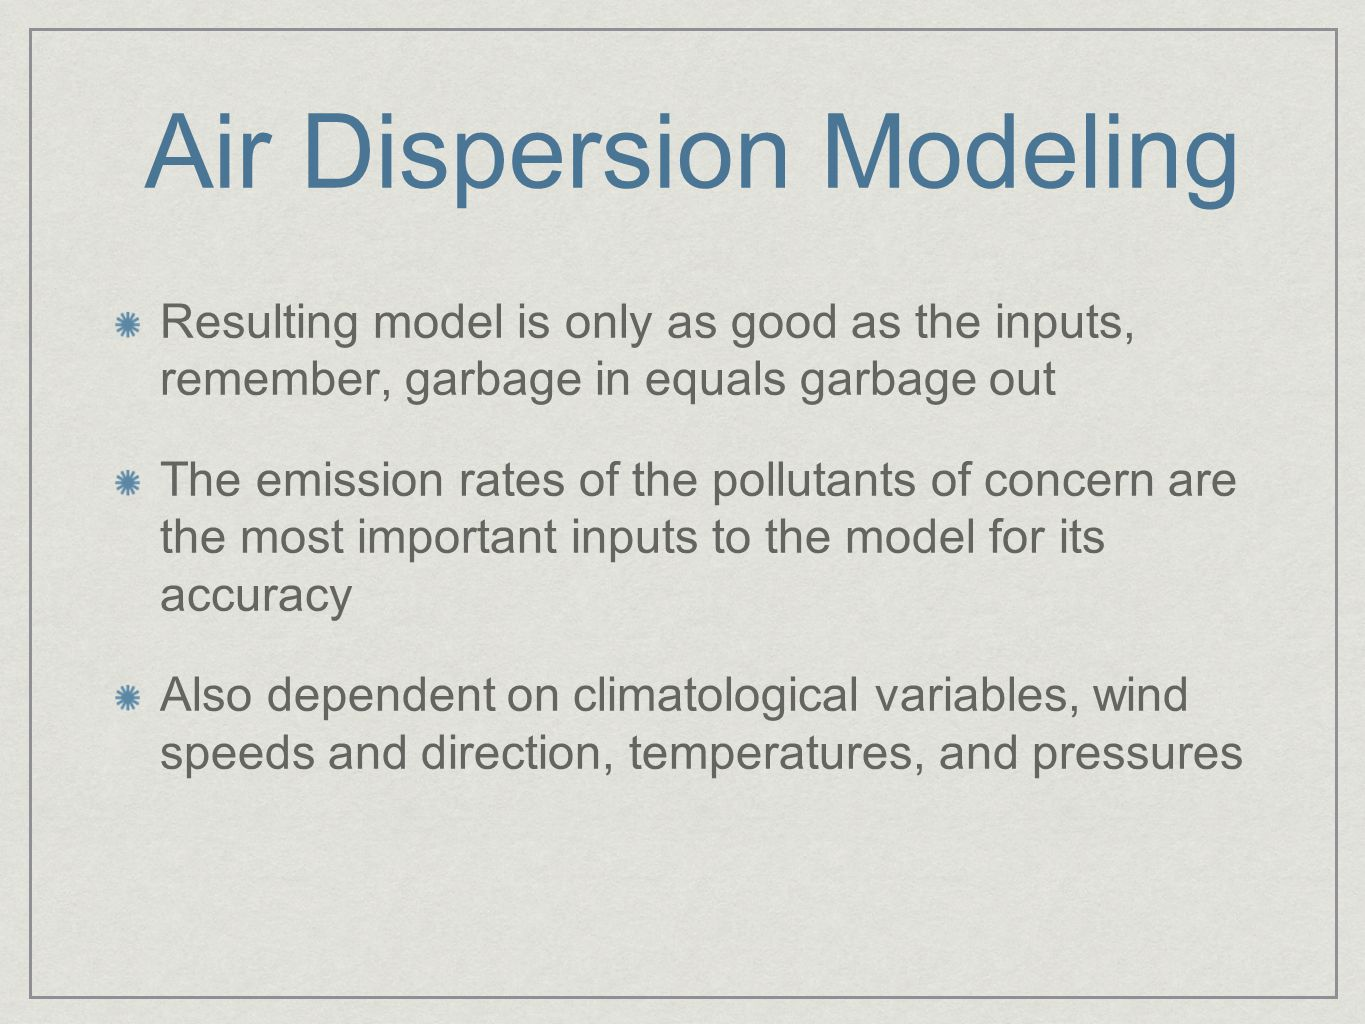 Air Dispersion Modeling Resulting model is only as good as the inputs, remember, garbage in equals garbage out The emission rates of the pollutants of concern are the most important inputs to the model for its accuracy Also dependent on climatological variables, wind speeds and direction, temperatures, and pressures